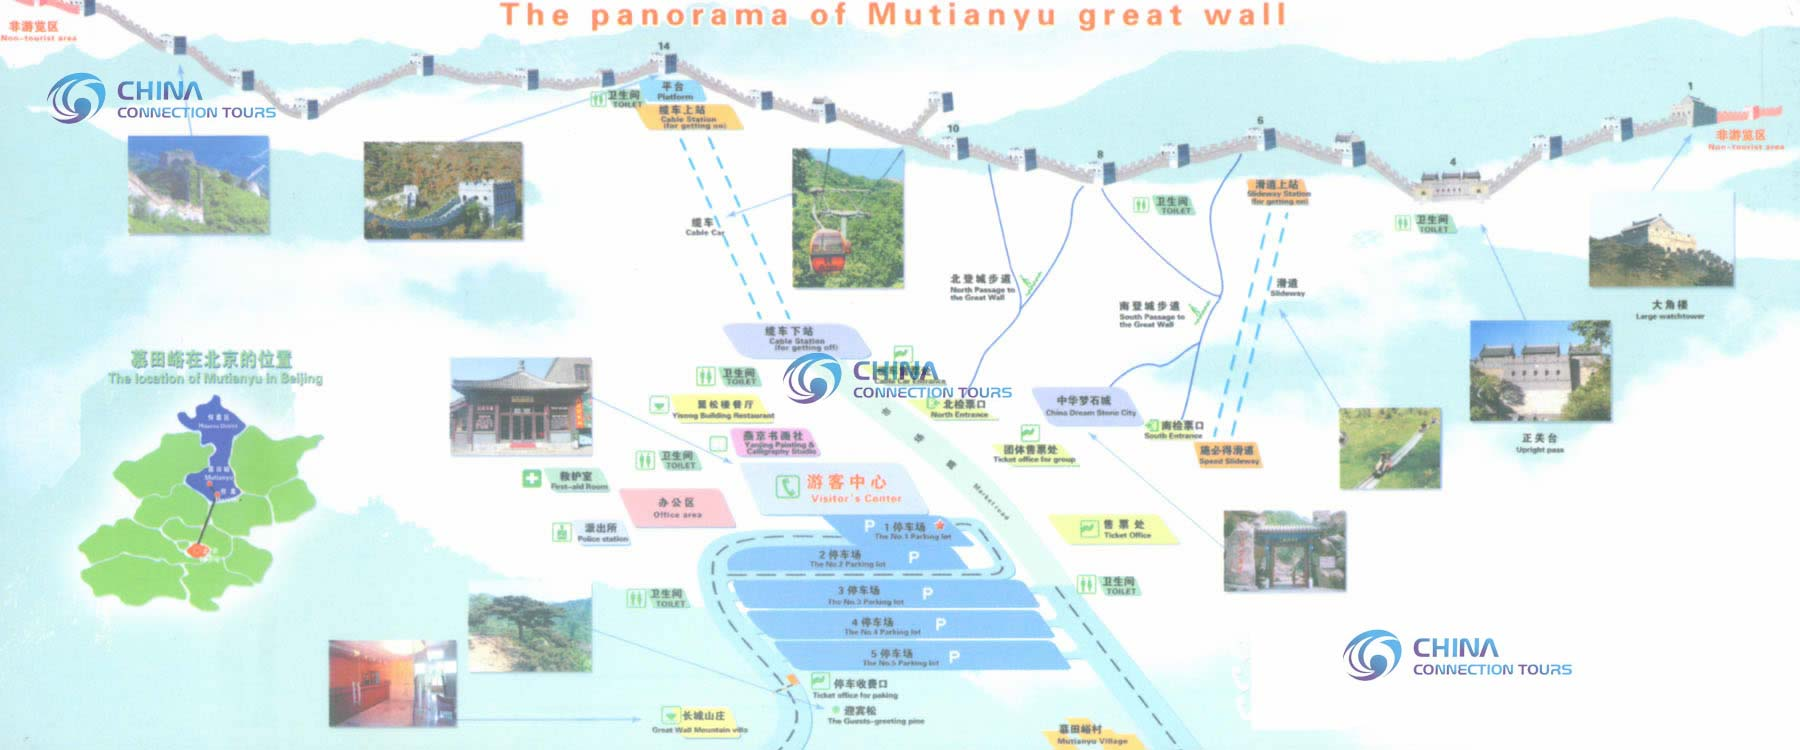 Mutianyu Great Wall Map Beijing Mutianyu Great Wall Map Beijing – Beijing Travel Map